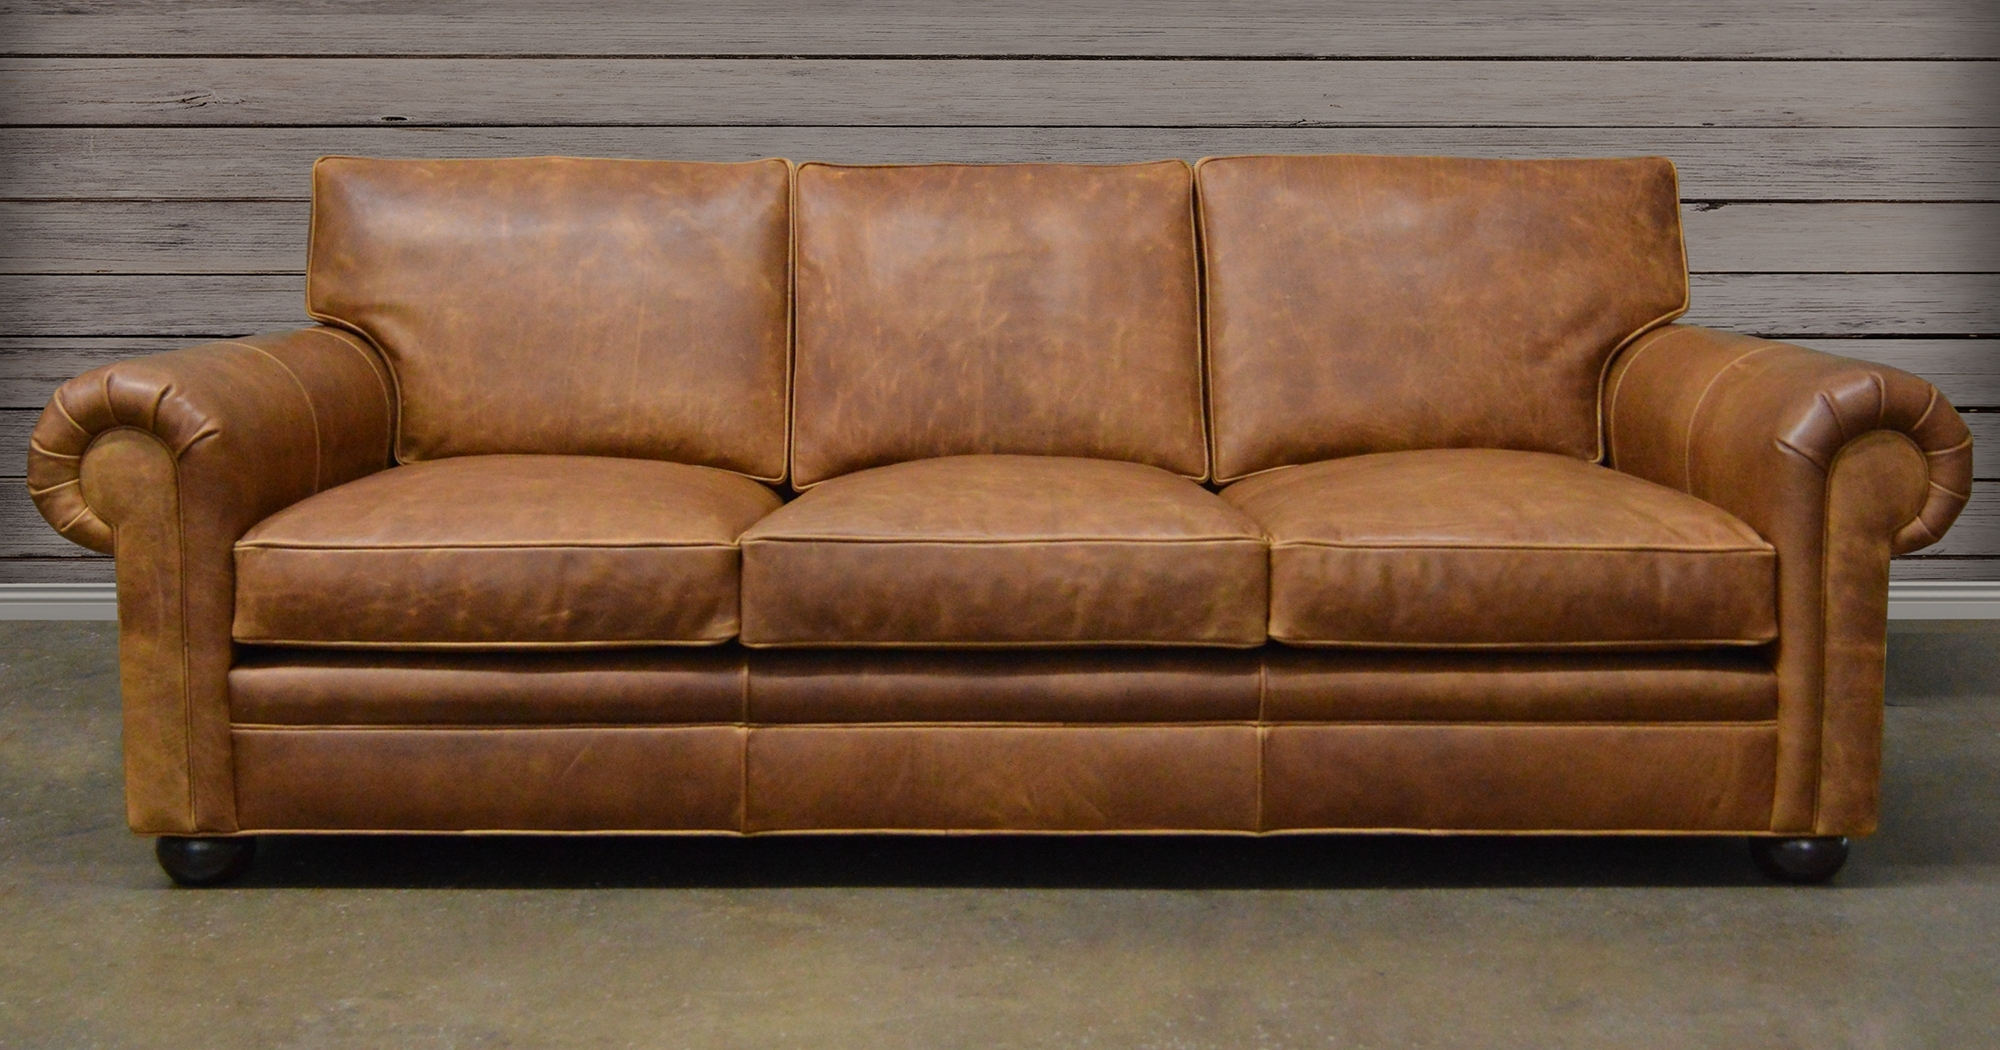 Furnitures: Classy Full Grain Leather Sofa For Luxury Living Room Intended For Recent Aniline Leather Sofas (View 14 of 20)